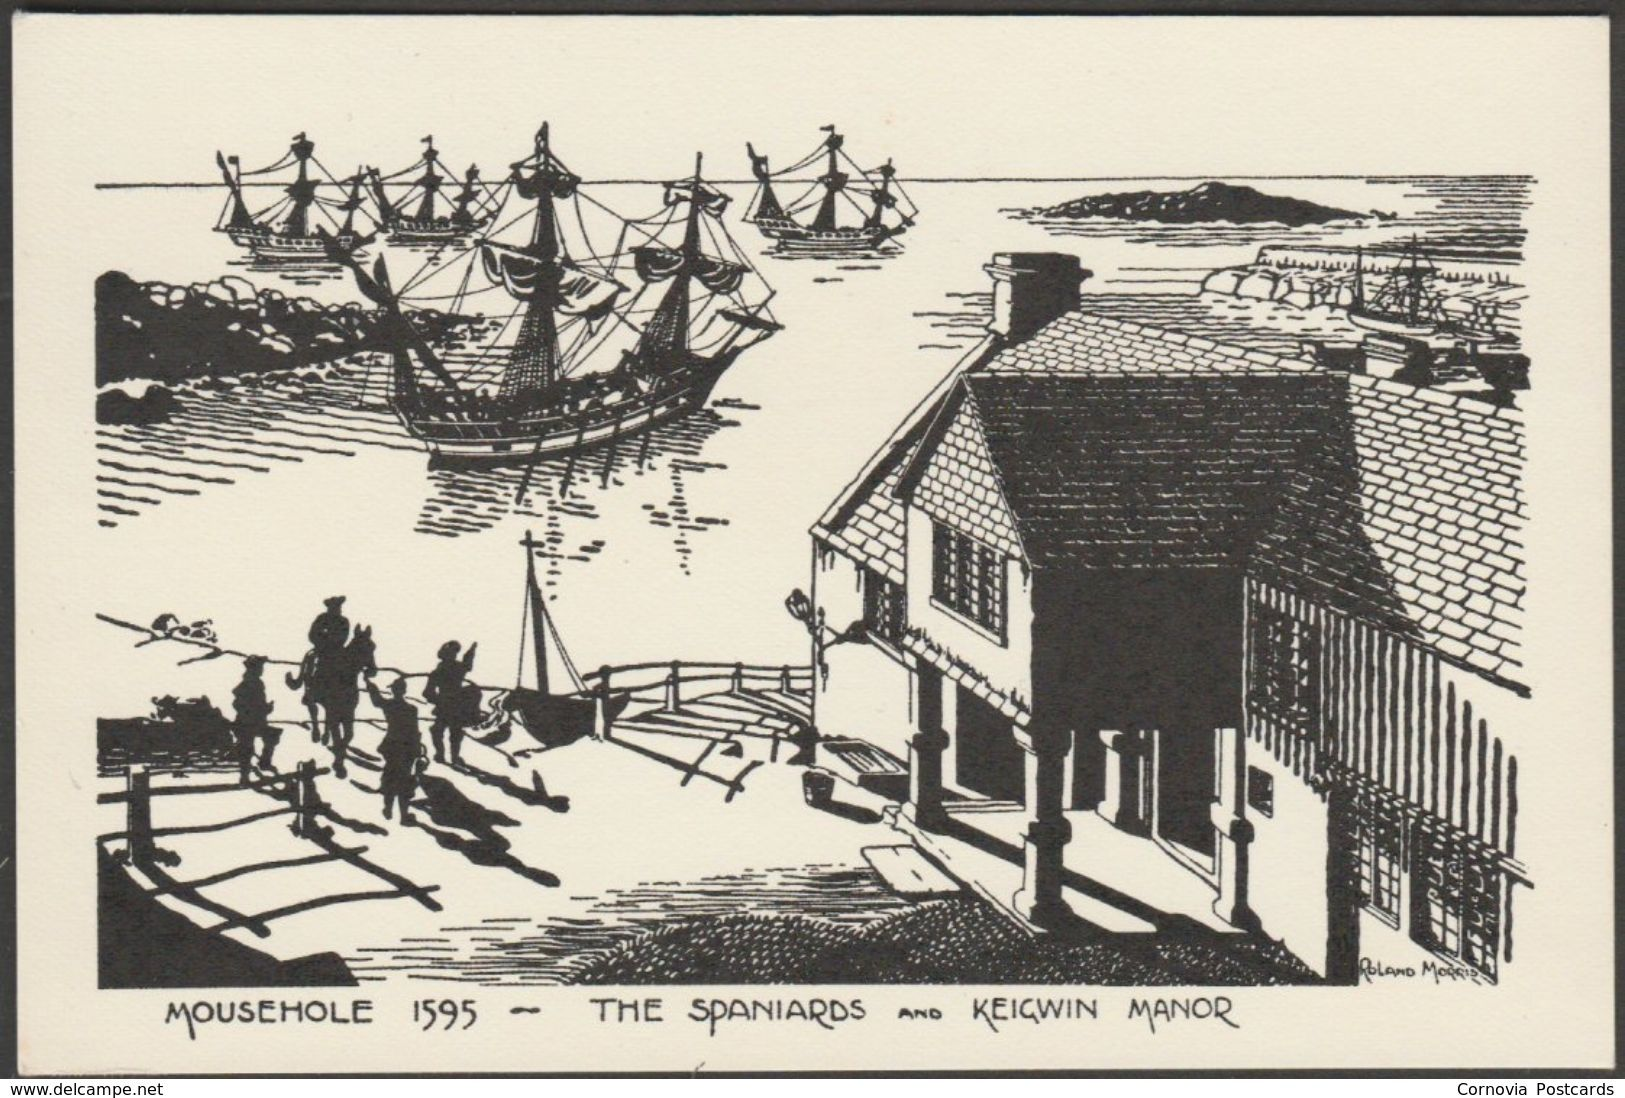 The Spaniards and Keigwin Manor in 1595, Mousehole, Cornwall, c.1960 - Postcard